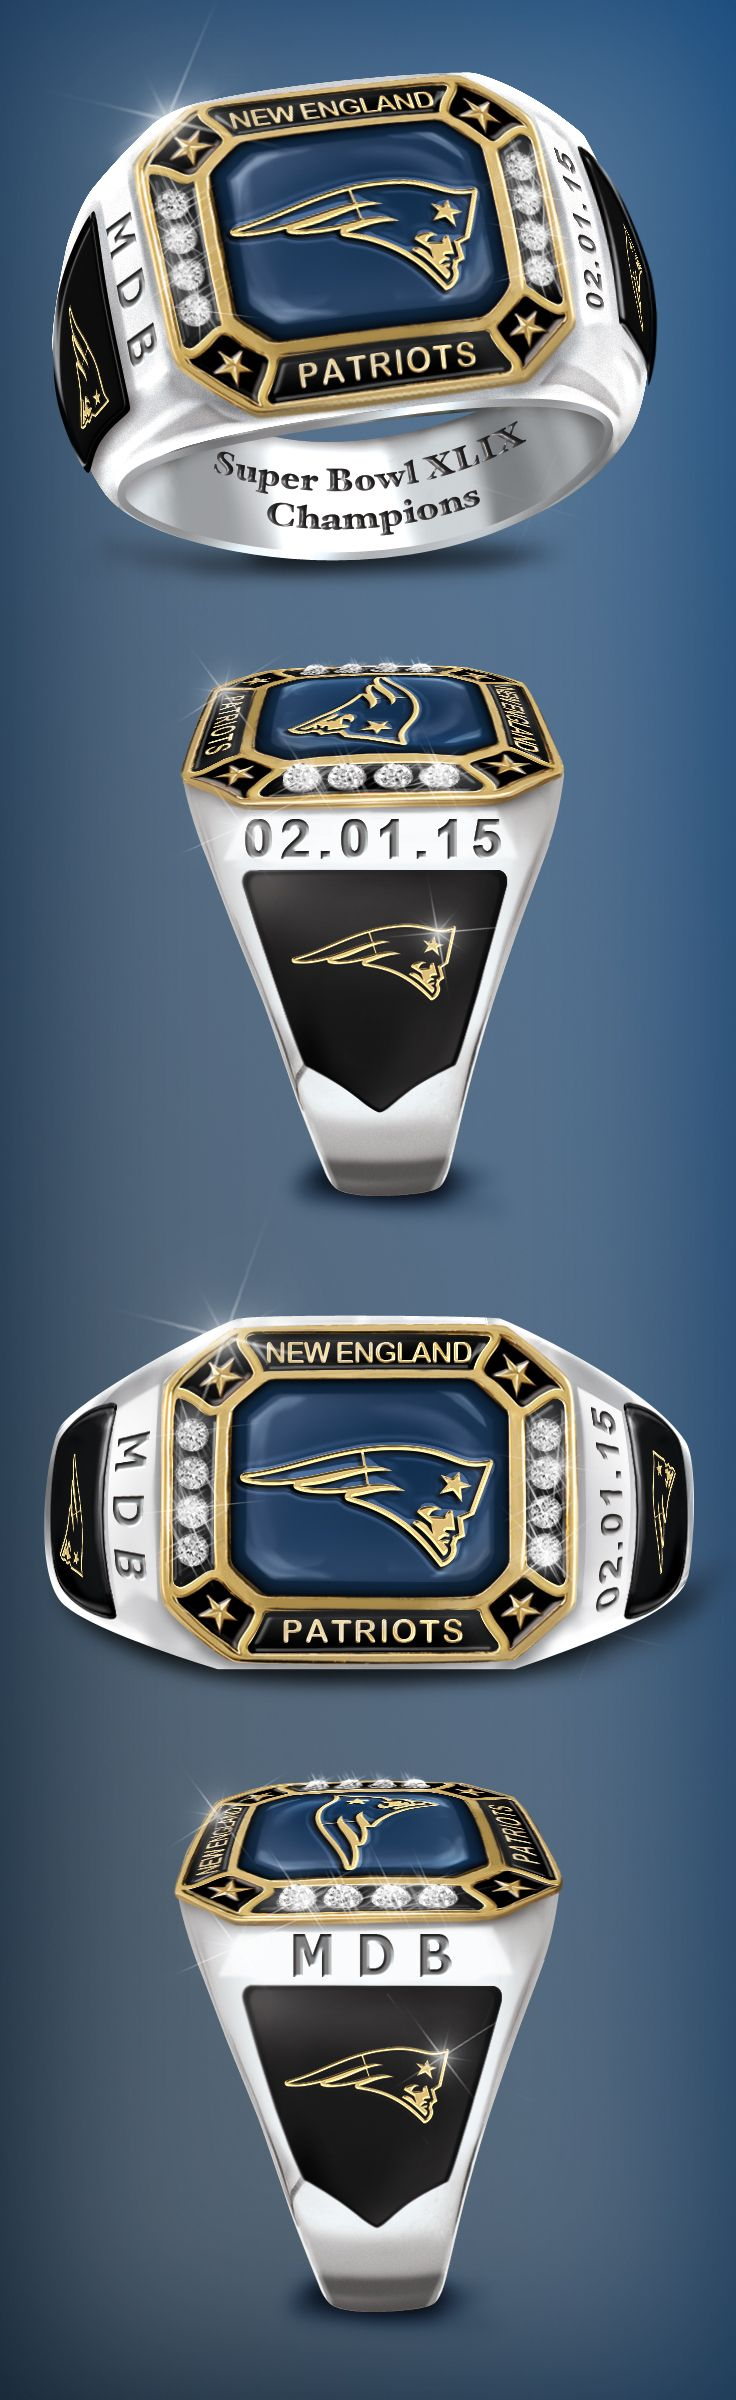 Congratulations to this year's Super Bowl Champions! Edition limit of 5,000!